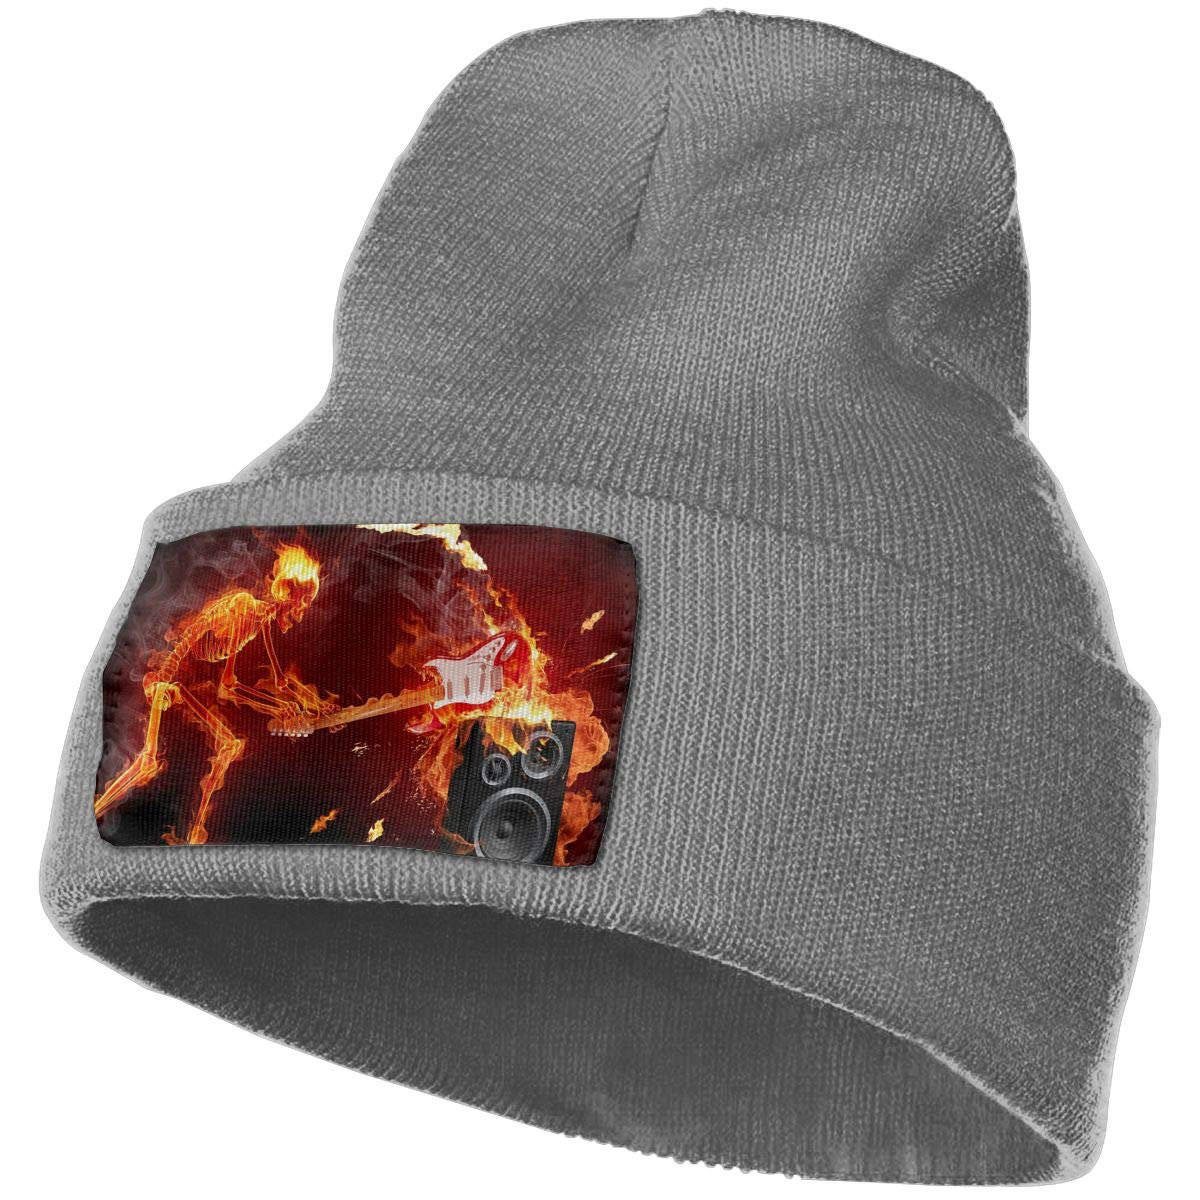 6185aa39ad32 Deep Heather Beanie Hats Hats Hats Red Flower Knit Hedging Cap Slouchy  Winter Warm Skull Caps For Men Womens ffe22b